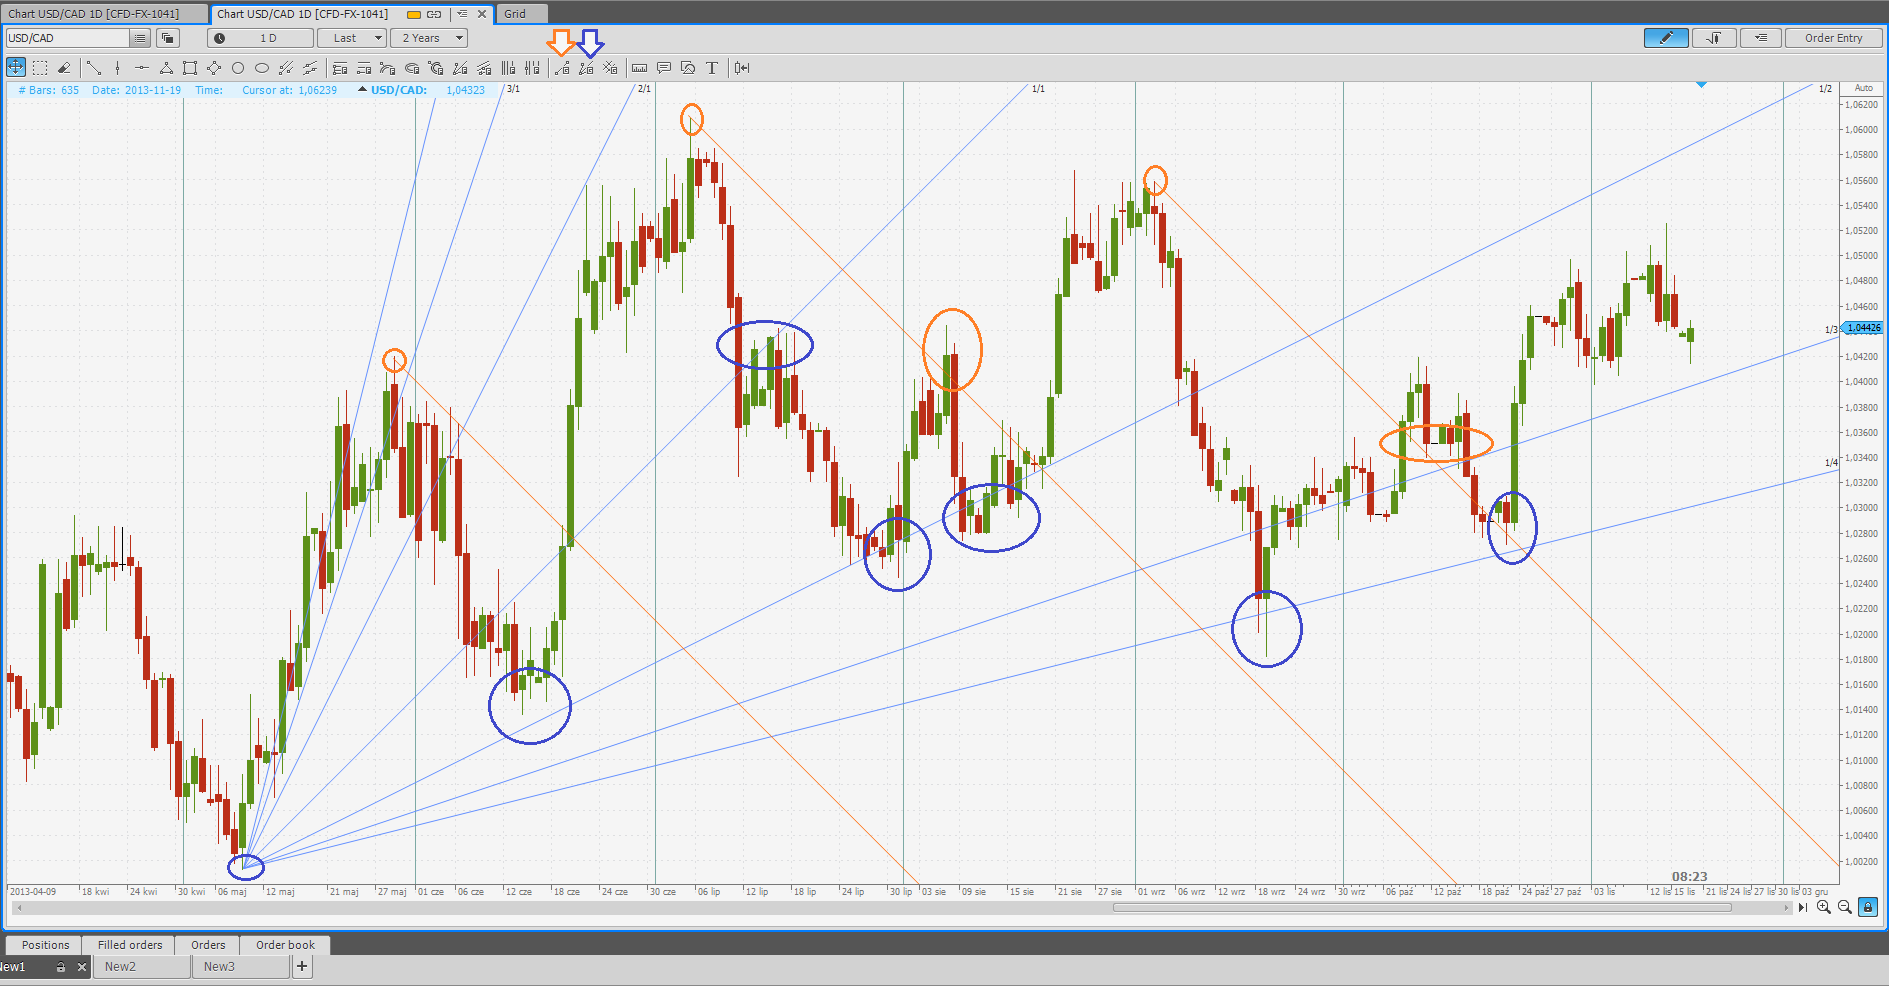 The example of use Gann's tools to trade the recent USD/CAD uptrend